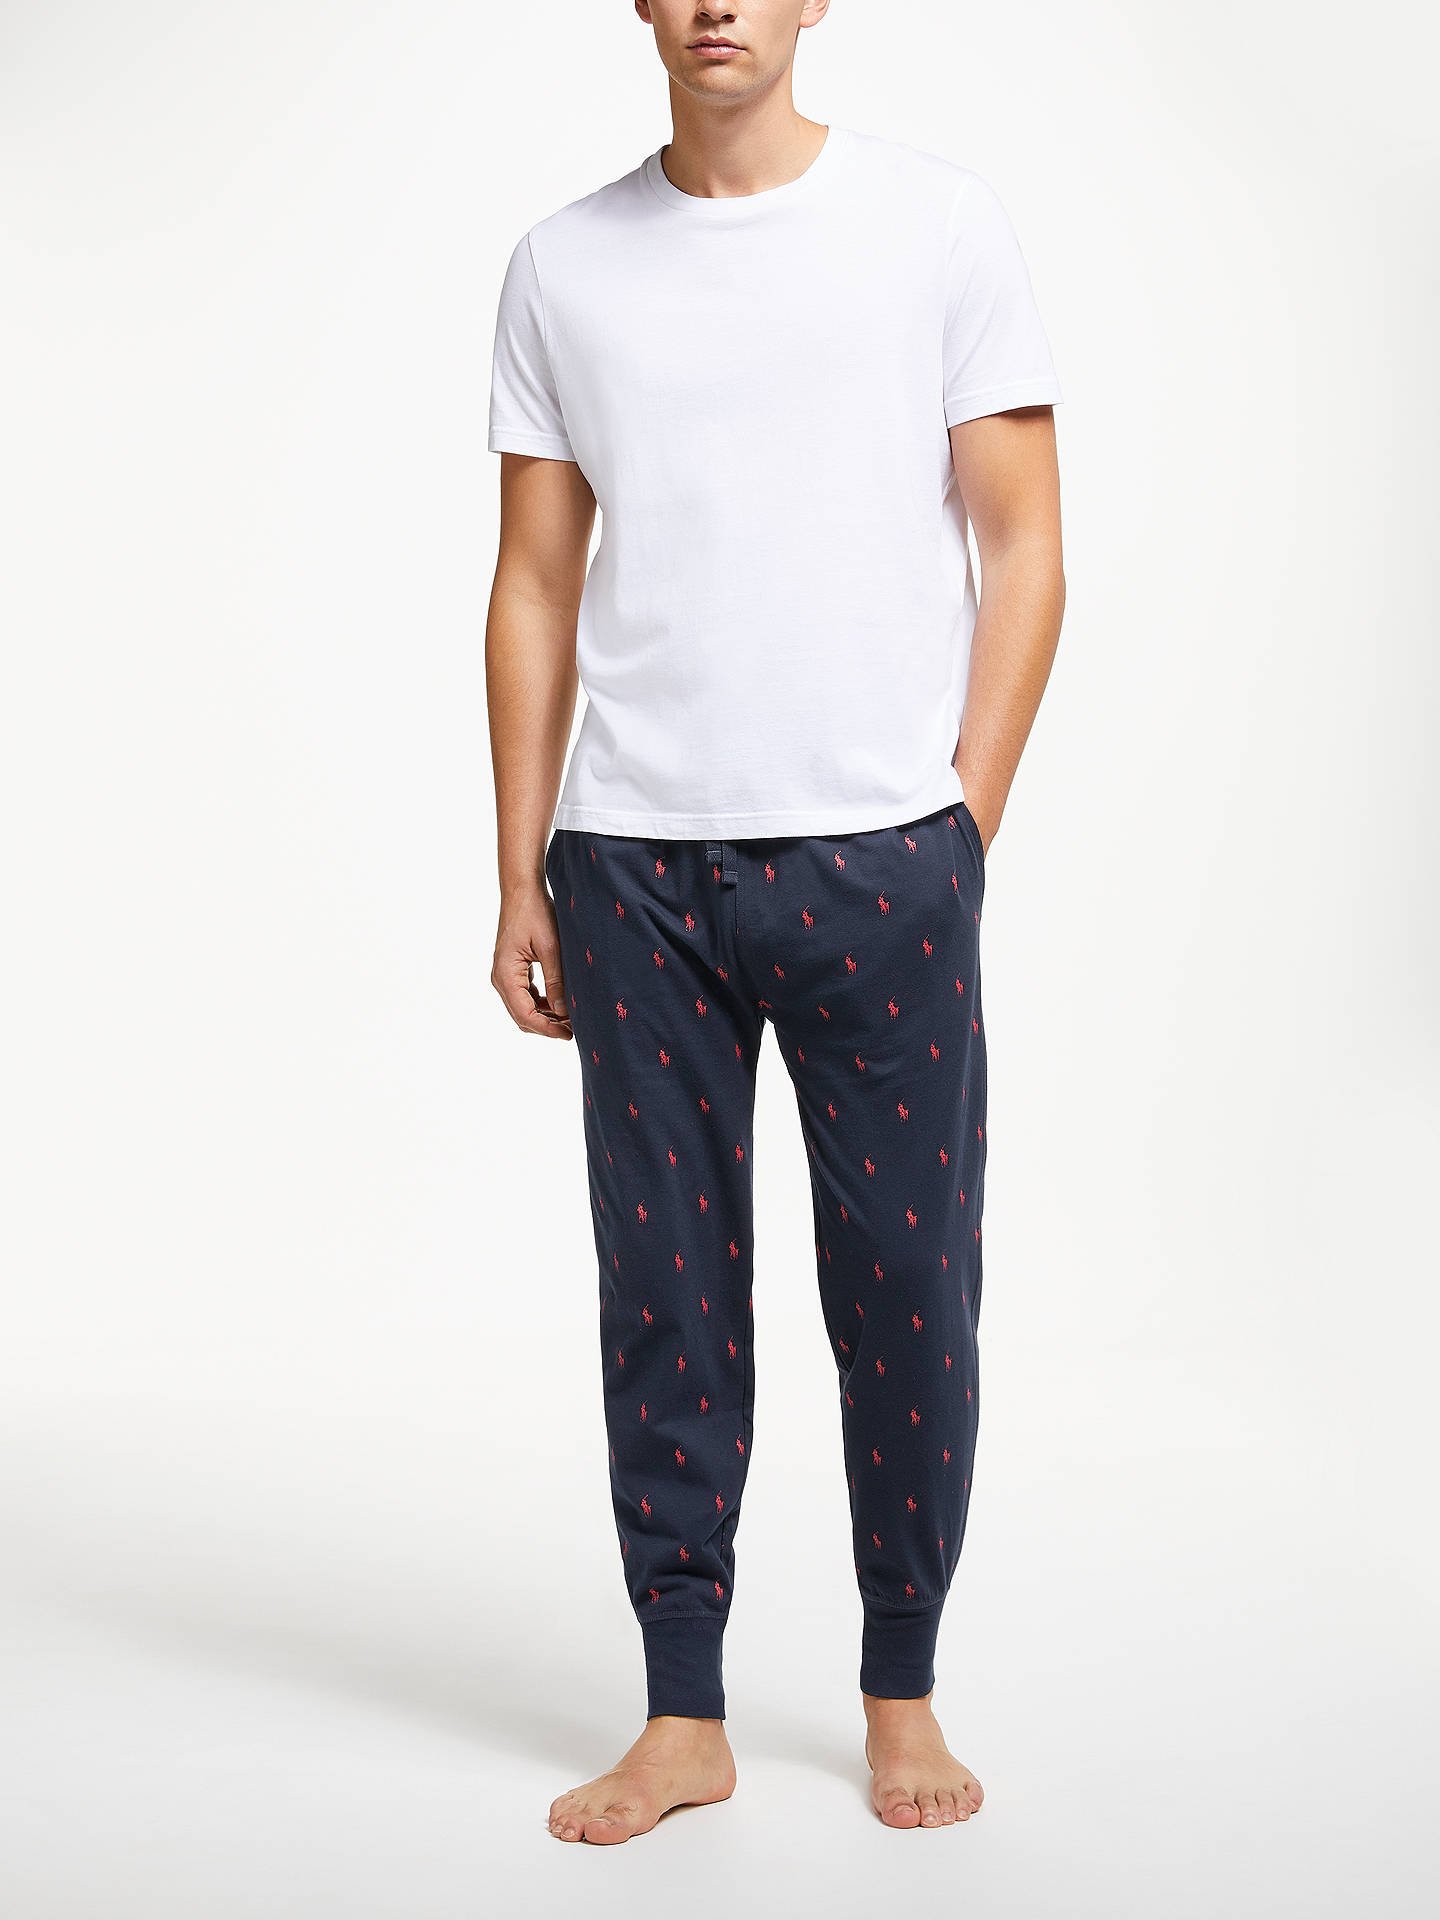 Buy Polo Ralph Lauren All Over Pony Lounge Pants, Navy, M Online at johnlewis.com